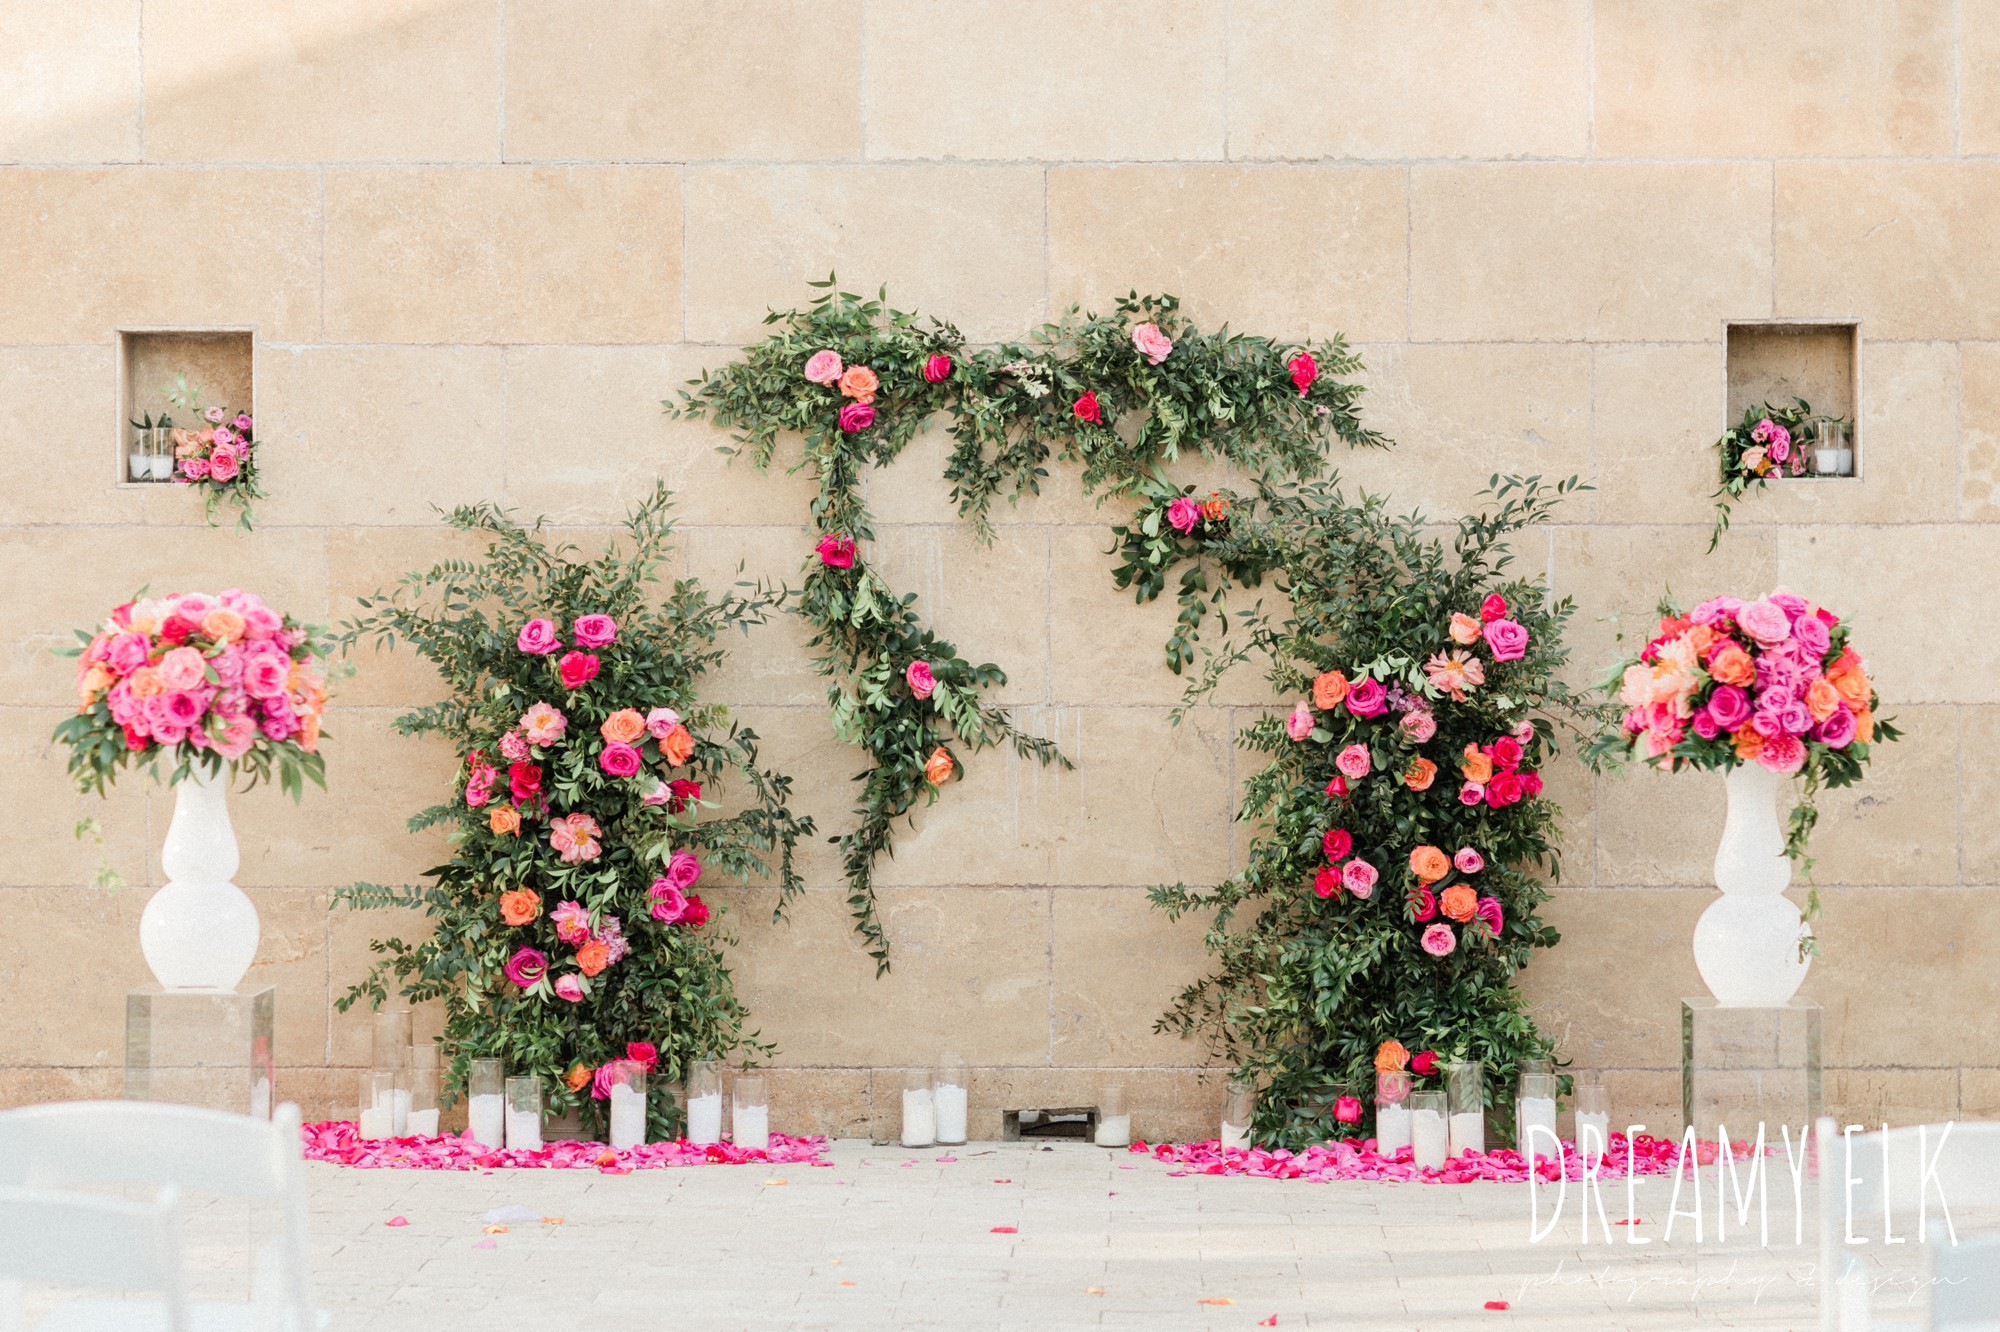 floral arch, spring colorful pink orange wedding photo, fort worth, texas, dreamy elk photography and design, jen rios weddings, kate foley designs